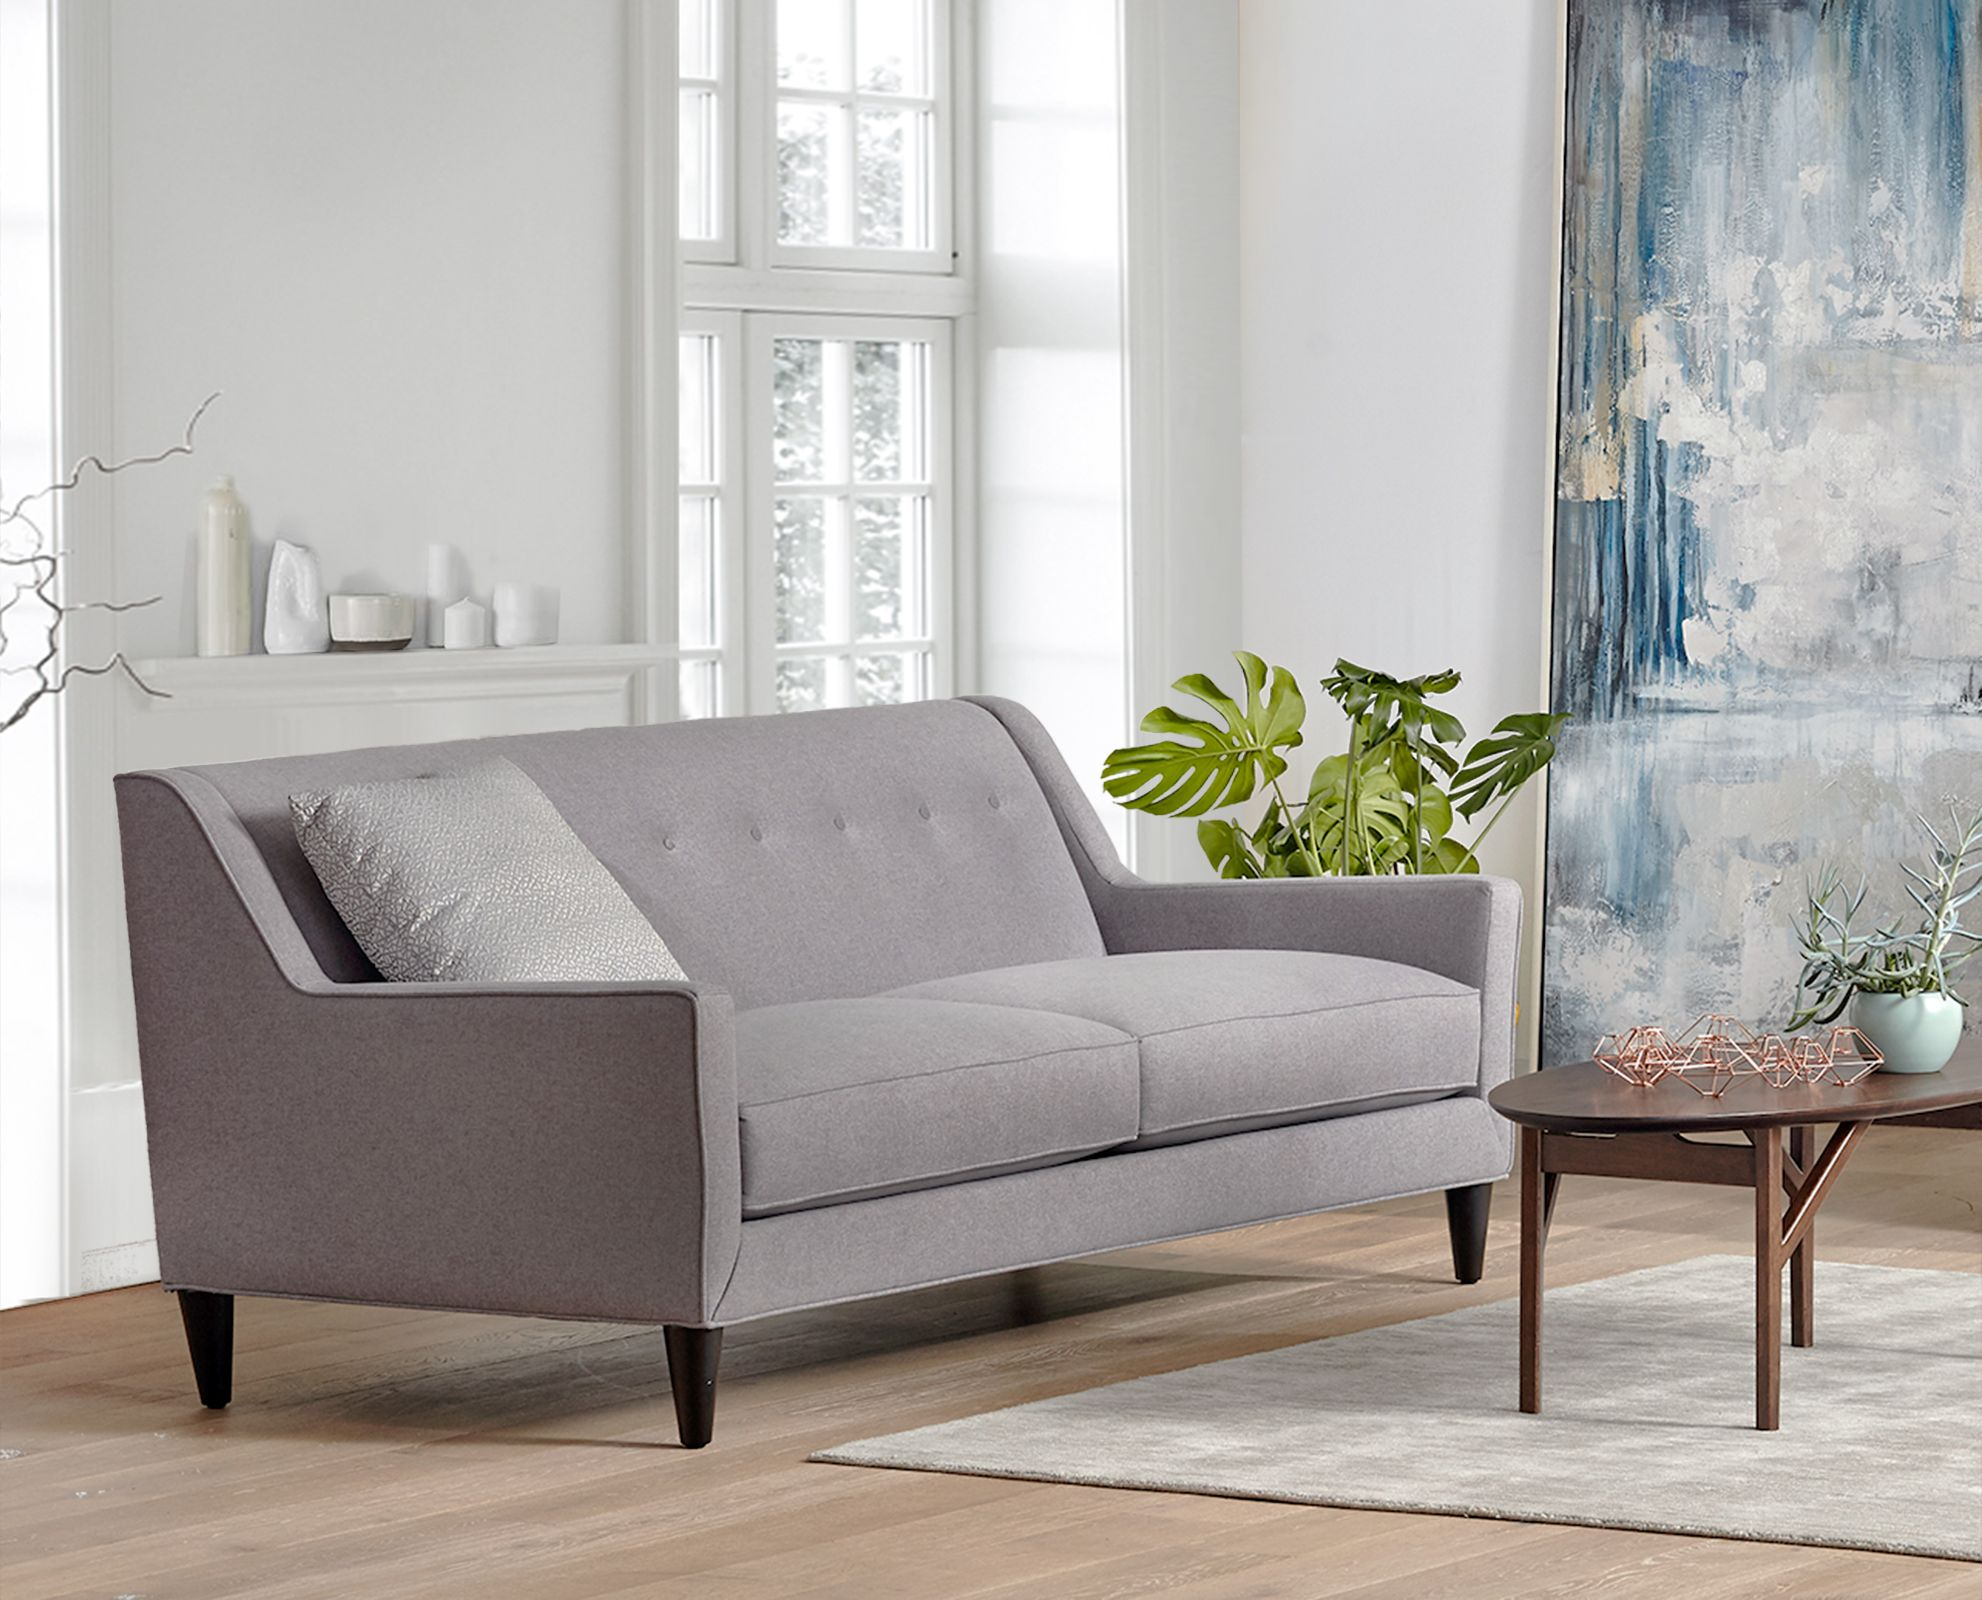 Superior Rewind To Retro With Our Varela Sofa, Which Features A Design Inspired By  The Sophistication Of Mid Century Style. Clean Lines Sculpt Its Boxy, Lowu2026